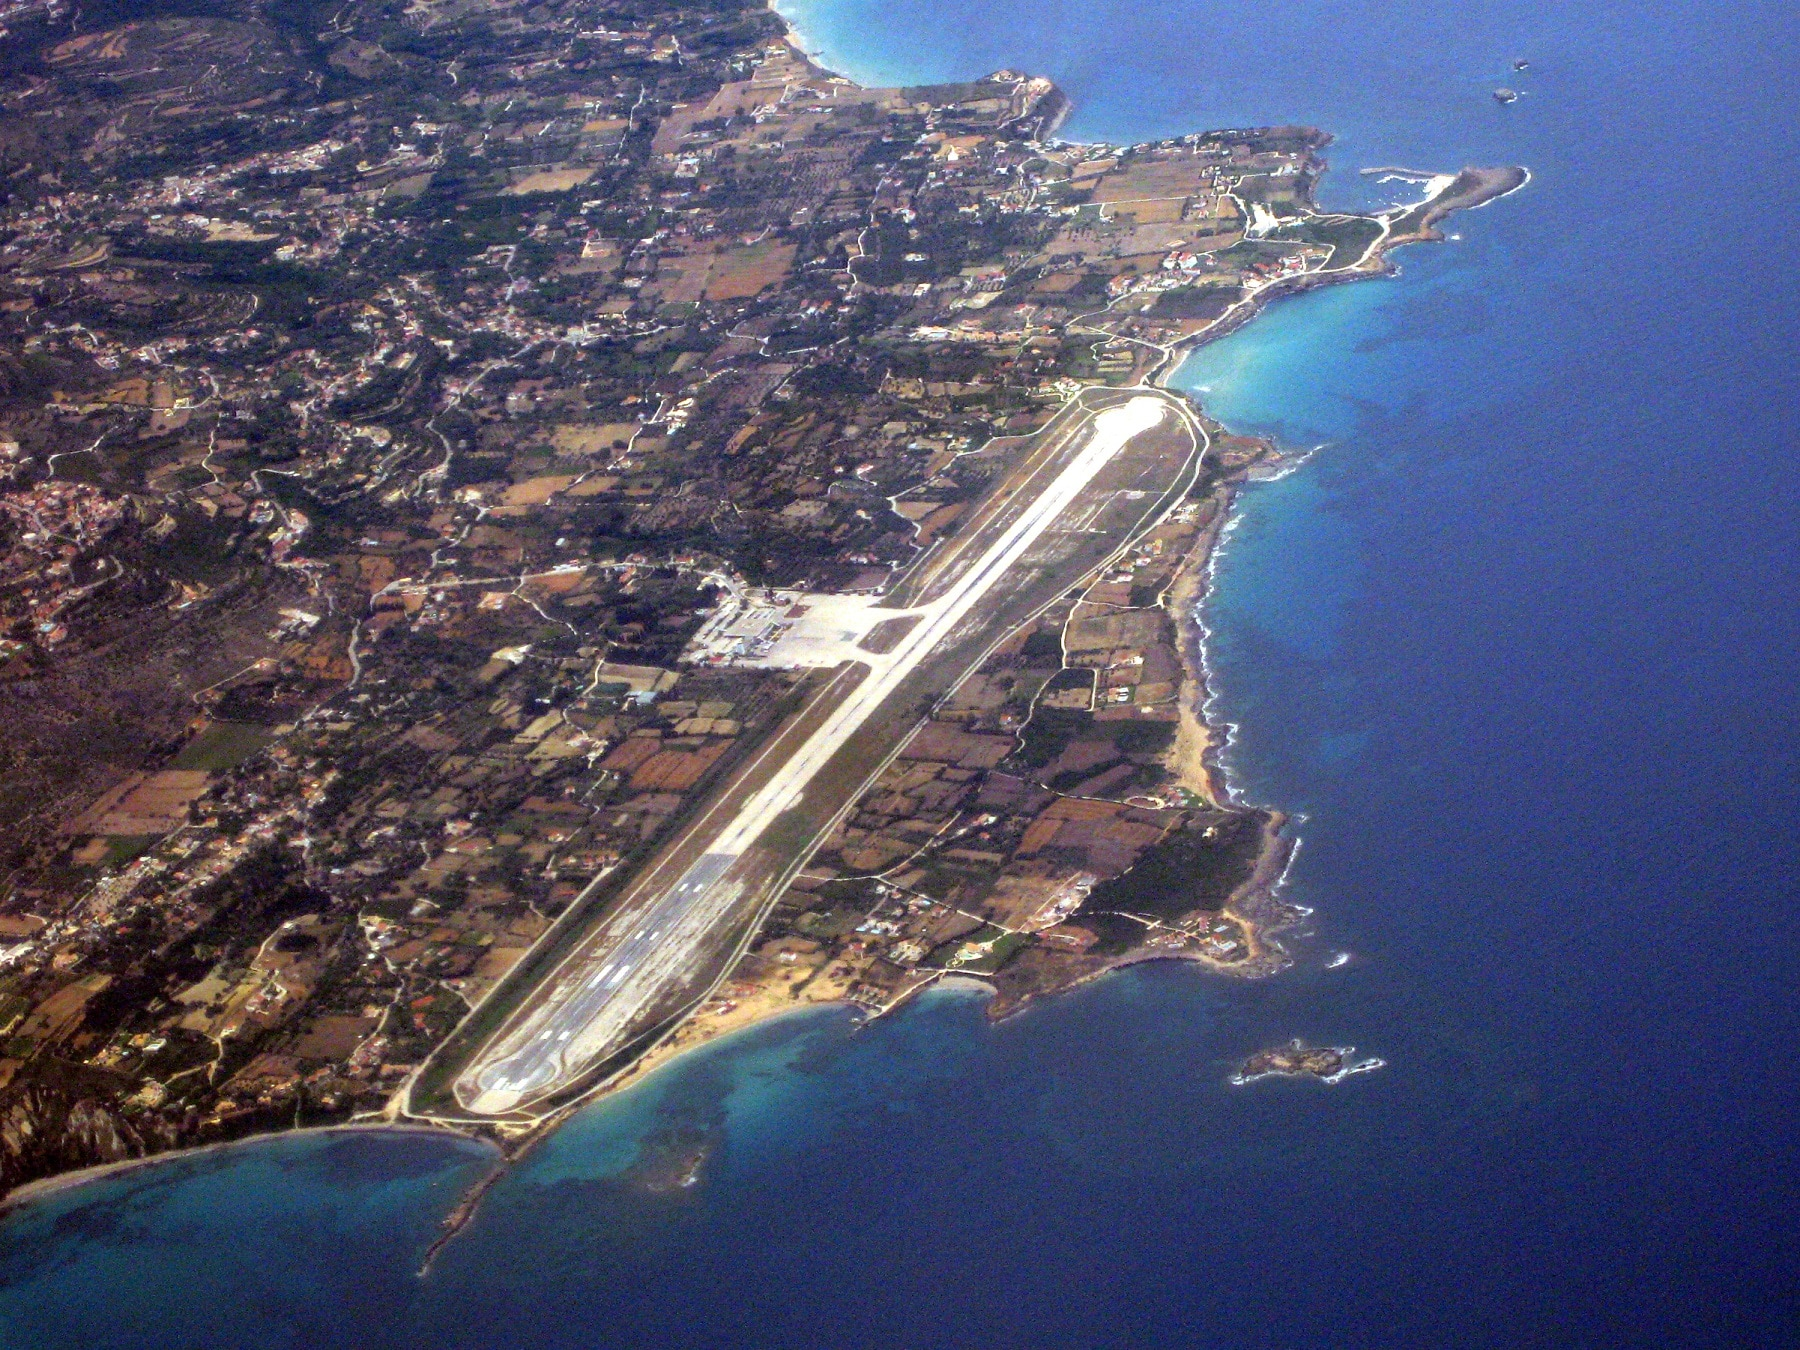 Aeroportul din Kefalonia - imagine panoramică